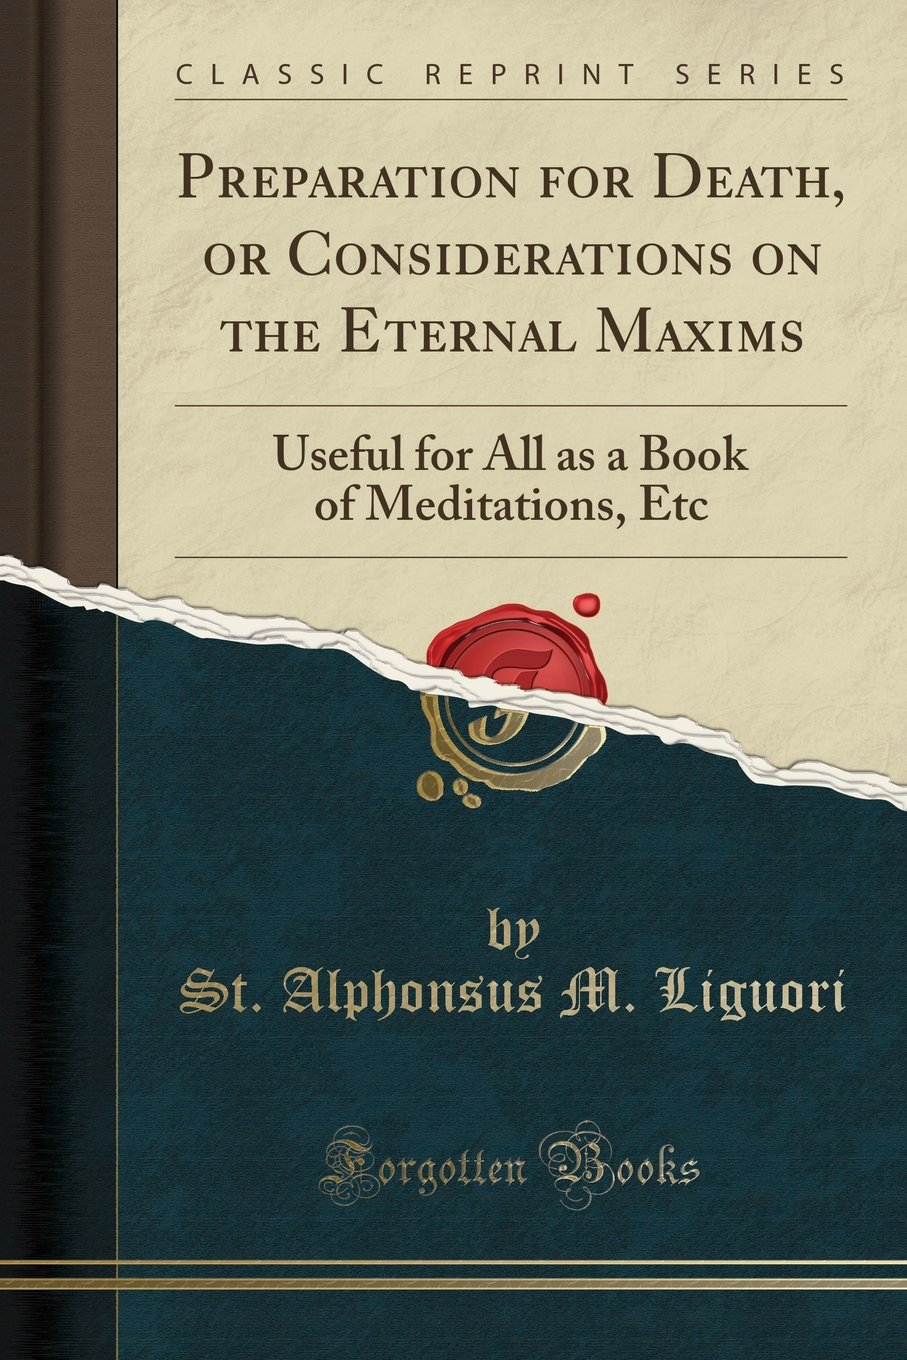 Preparation for Death, or Considerations on the Eternal Maxims: Useful for All as a Book of Meditations, Etc (Classic Reprint) pdf